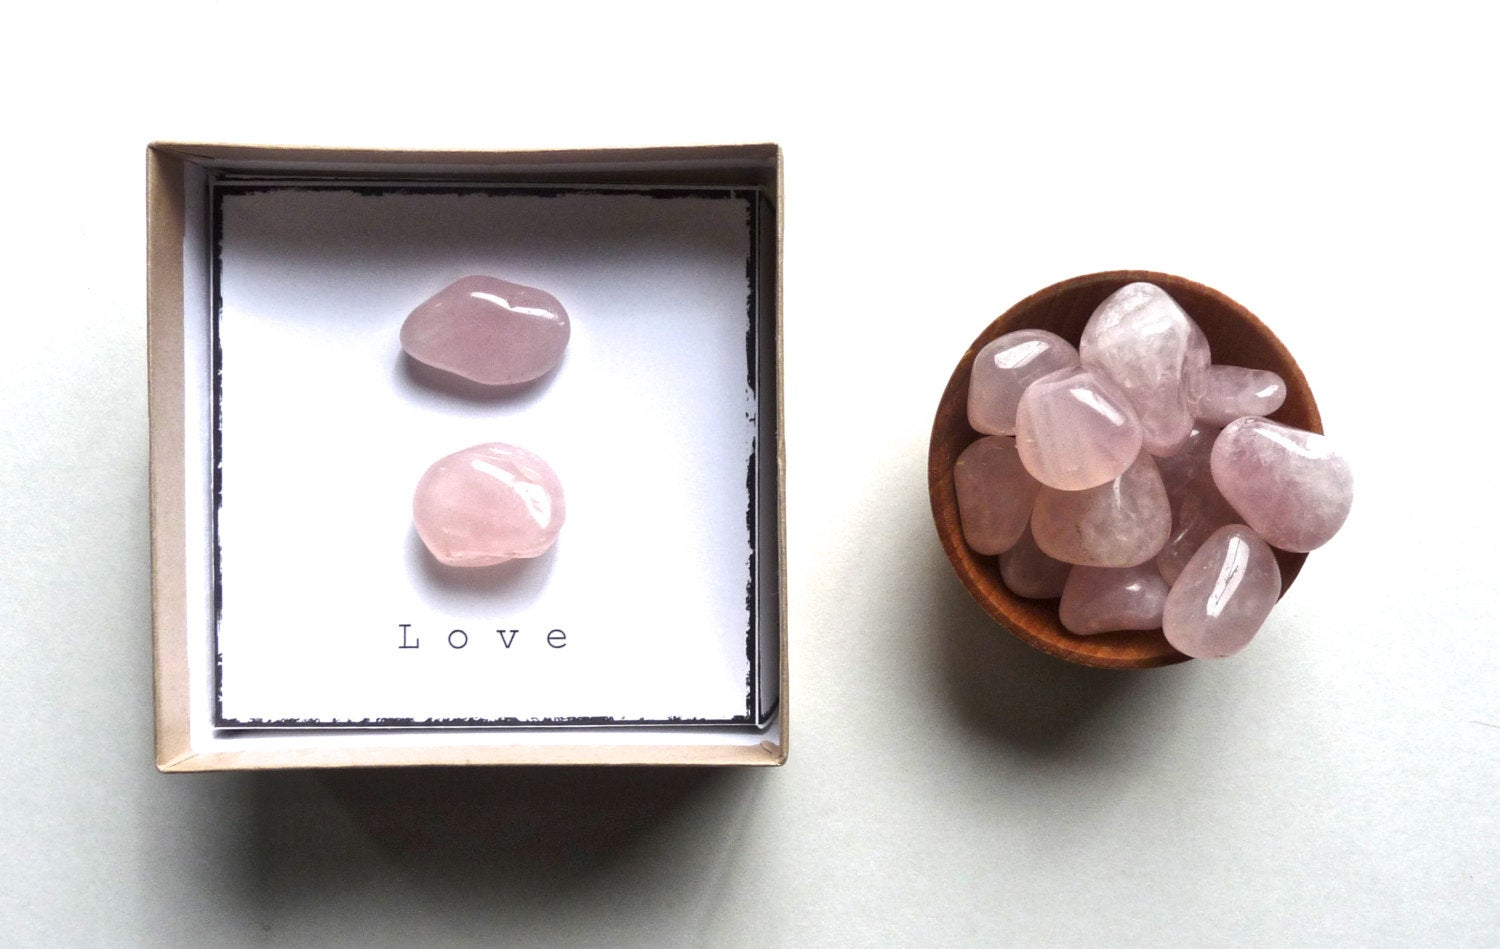 L O V E | ROSE QUARTZ - intention stone gift box